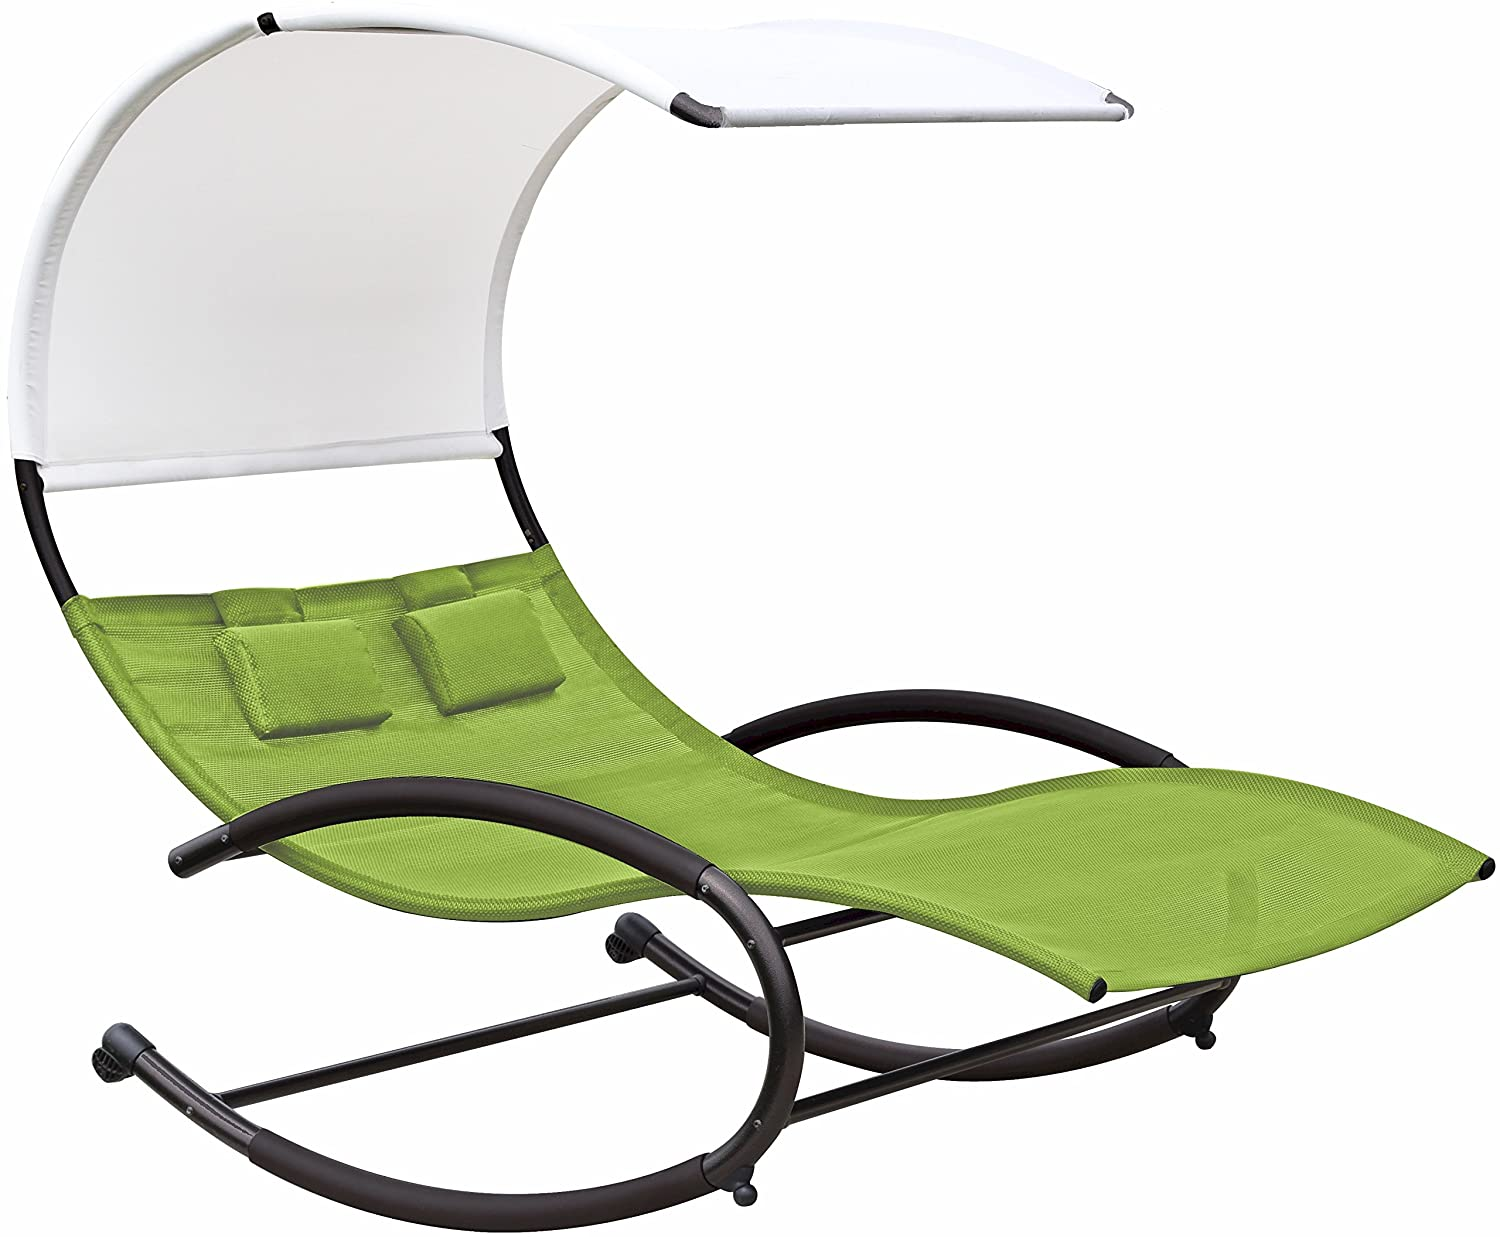 patio furniture garden double seat chaise chair canopy pool beach rocker swing ebay. Black Bedroom Furniture Sets. Home Design Ideas